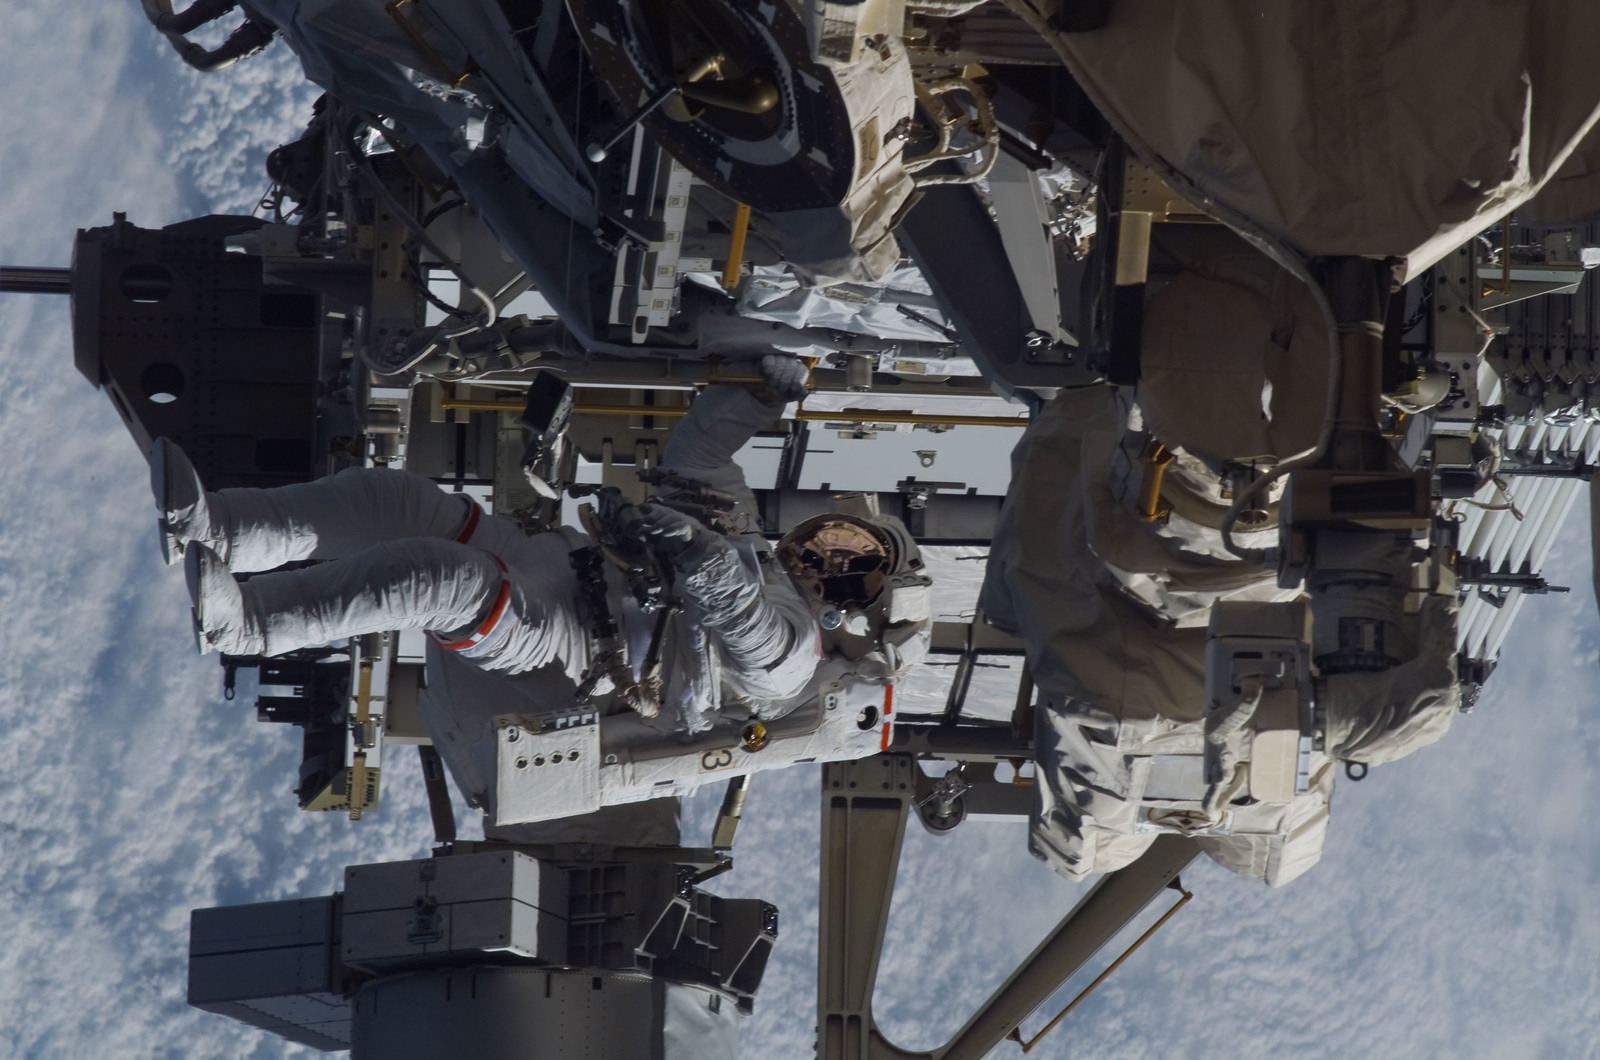 S115E05947 - STS-115 - STS-115 MS Burbank prepares the SARJ on the P3 - P4 Truss Segment during EVA